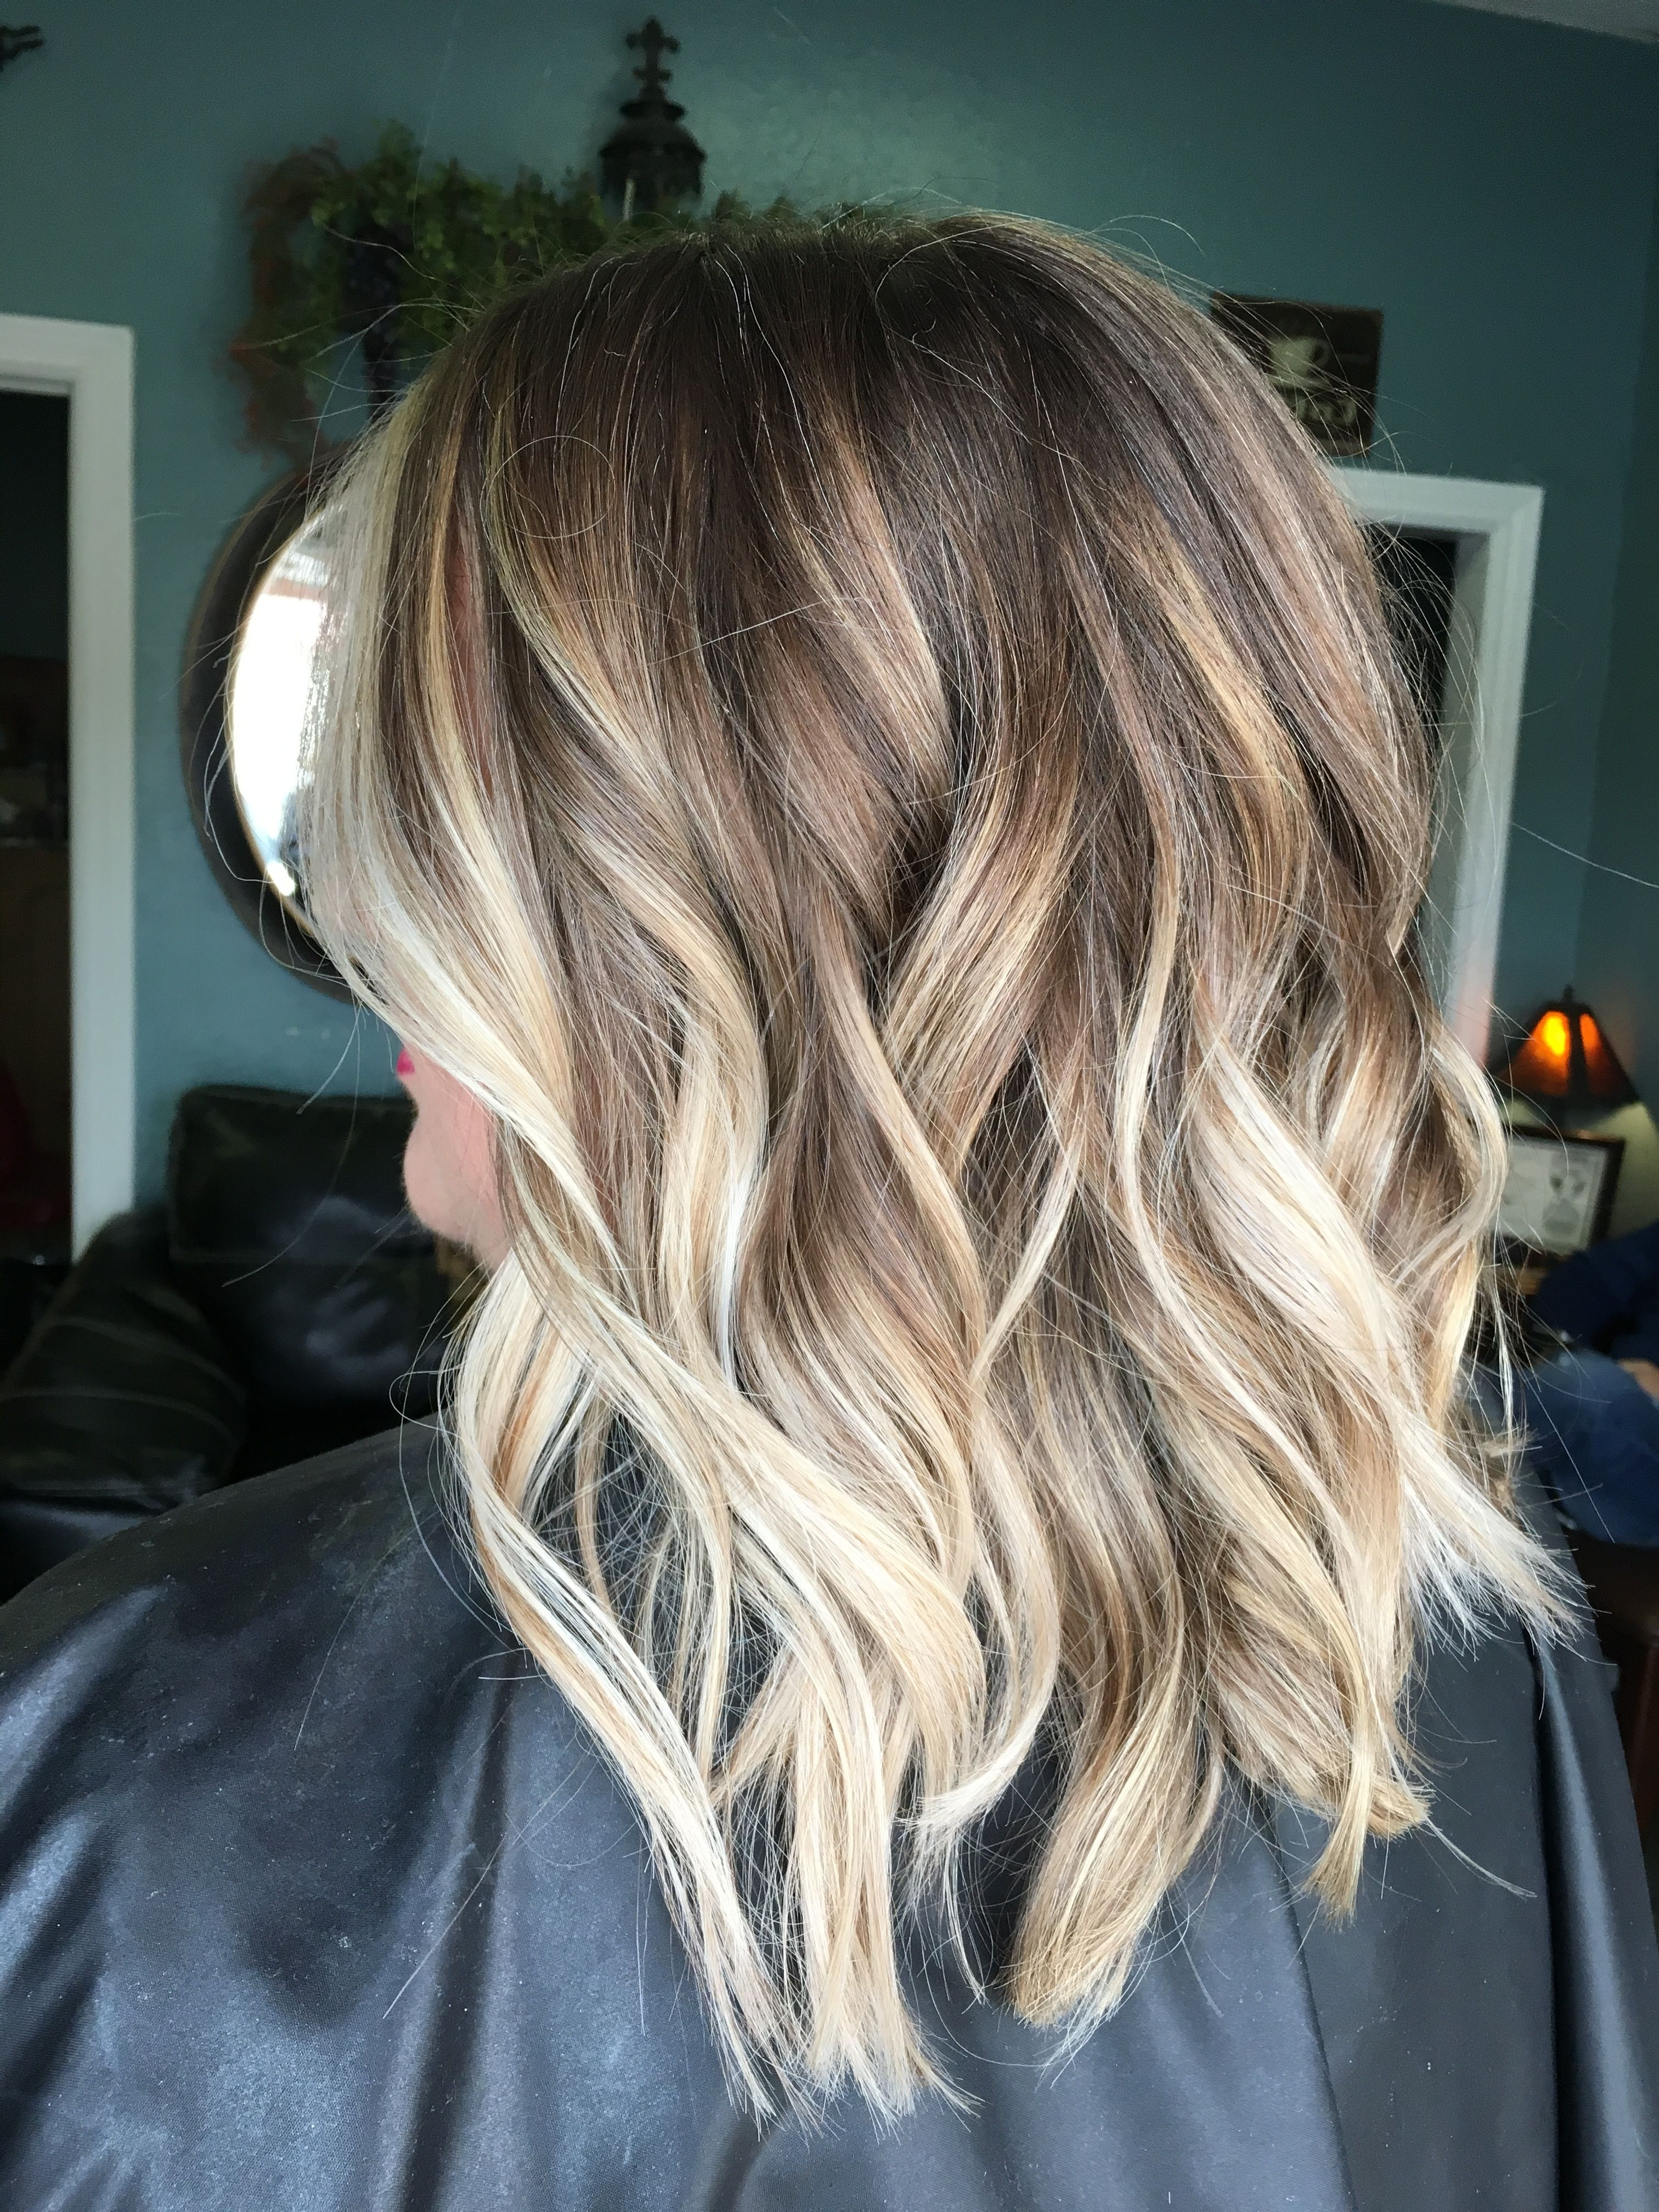 Popular Amber Waves Blonde Hairstyles With Regard To Balayage, Blonde Hair, Brown Hair, Blonde Highlights, Lob, Bob (View 2 of 20)